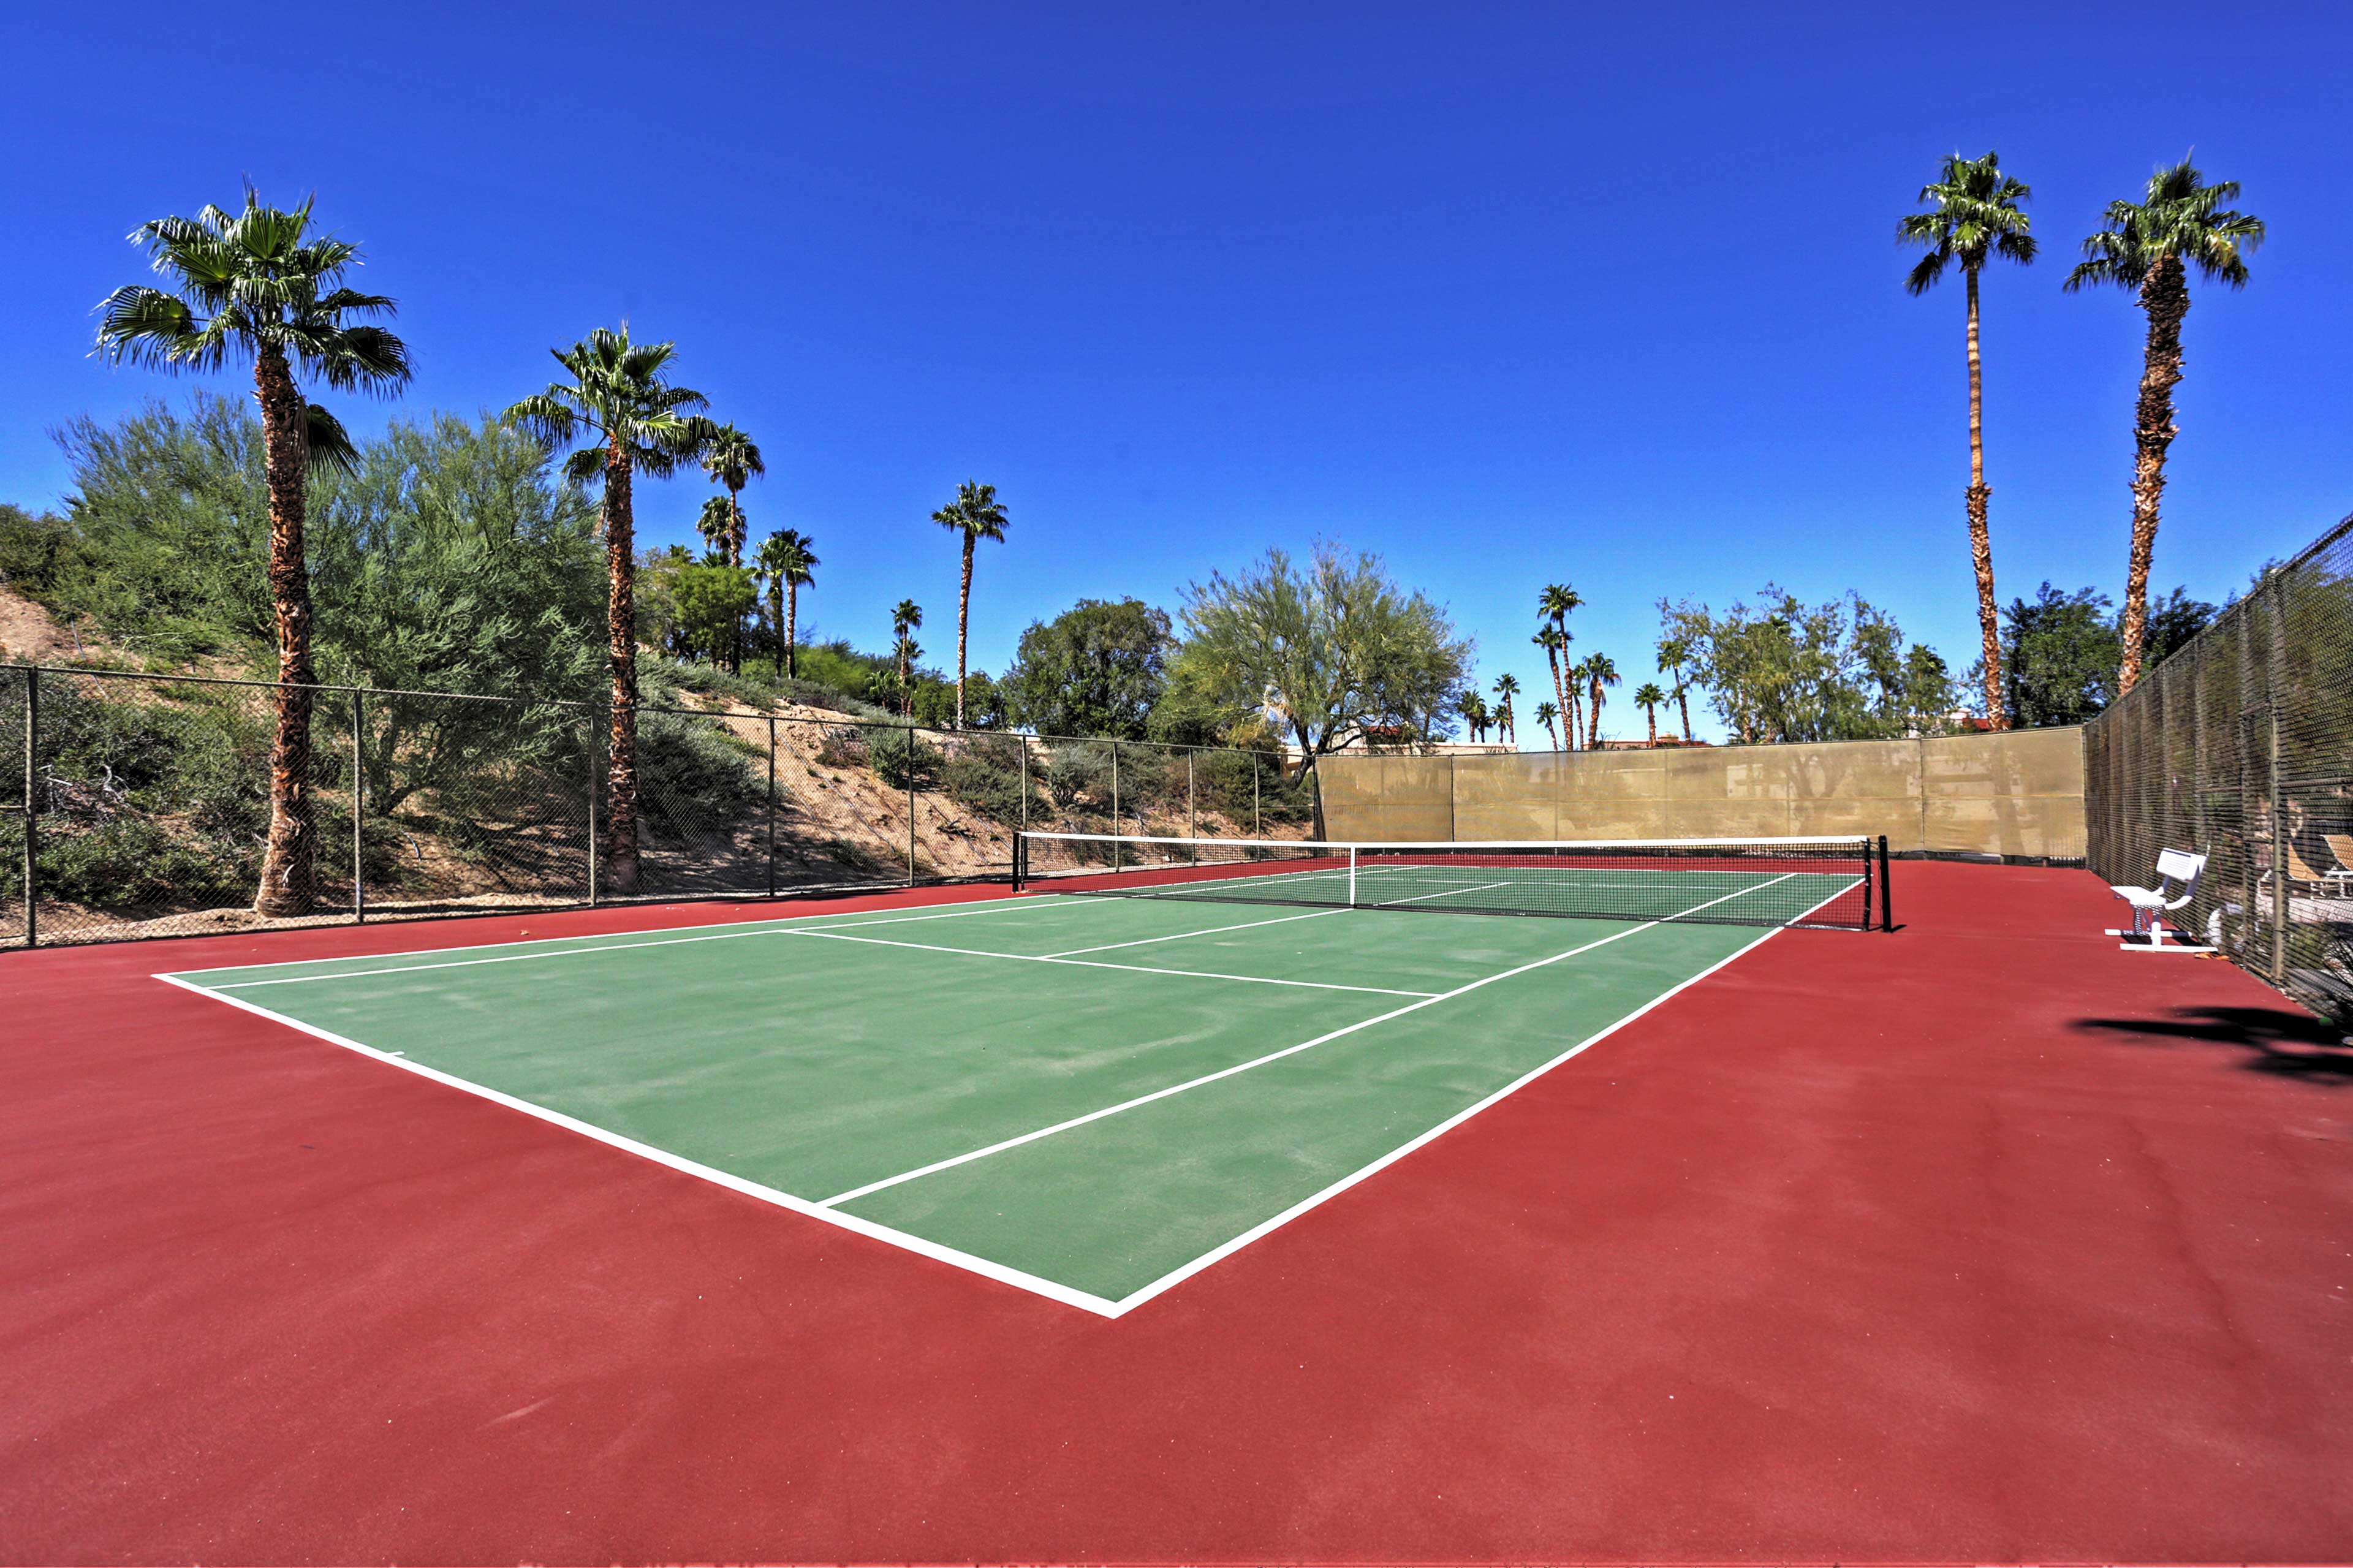 Work up a sweat on the tennis courts!!